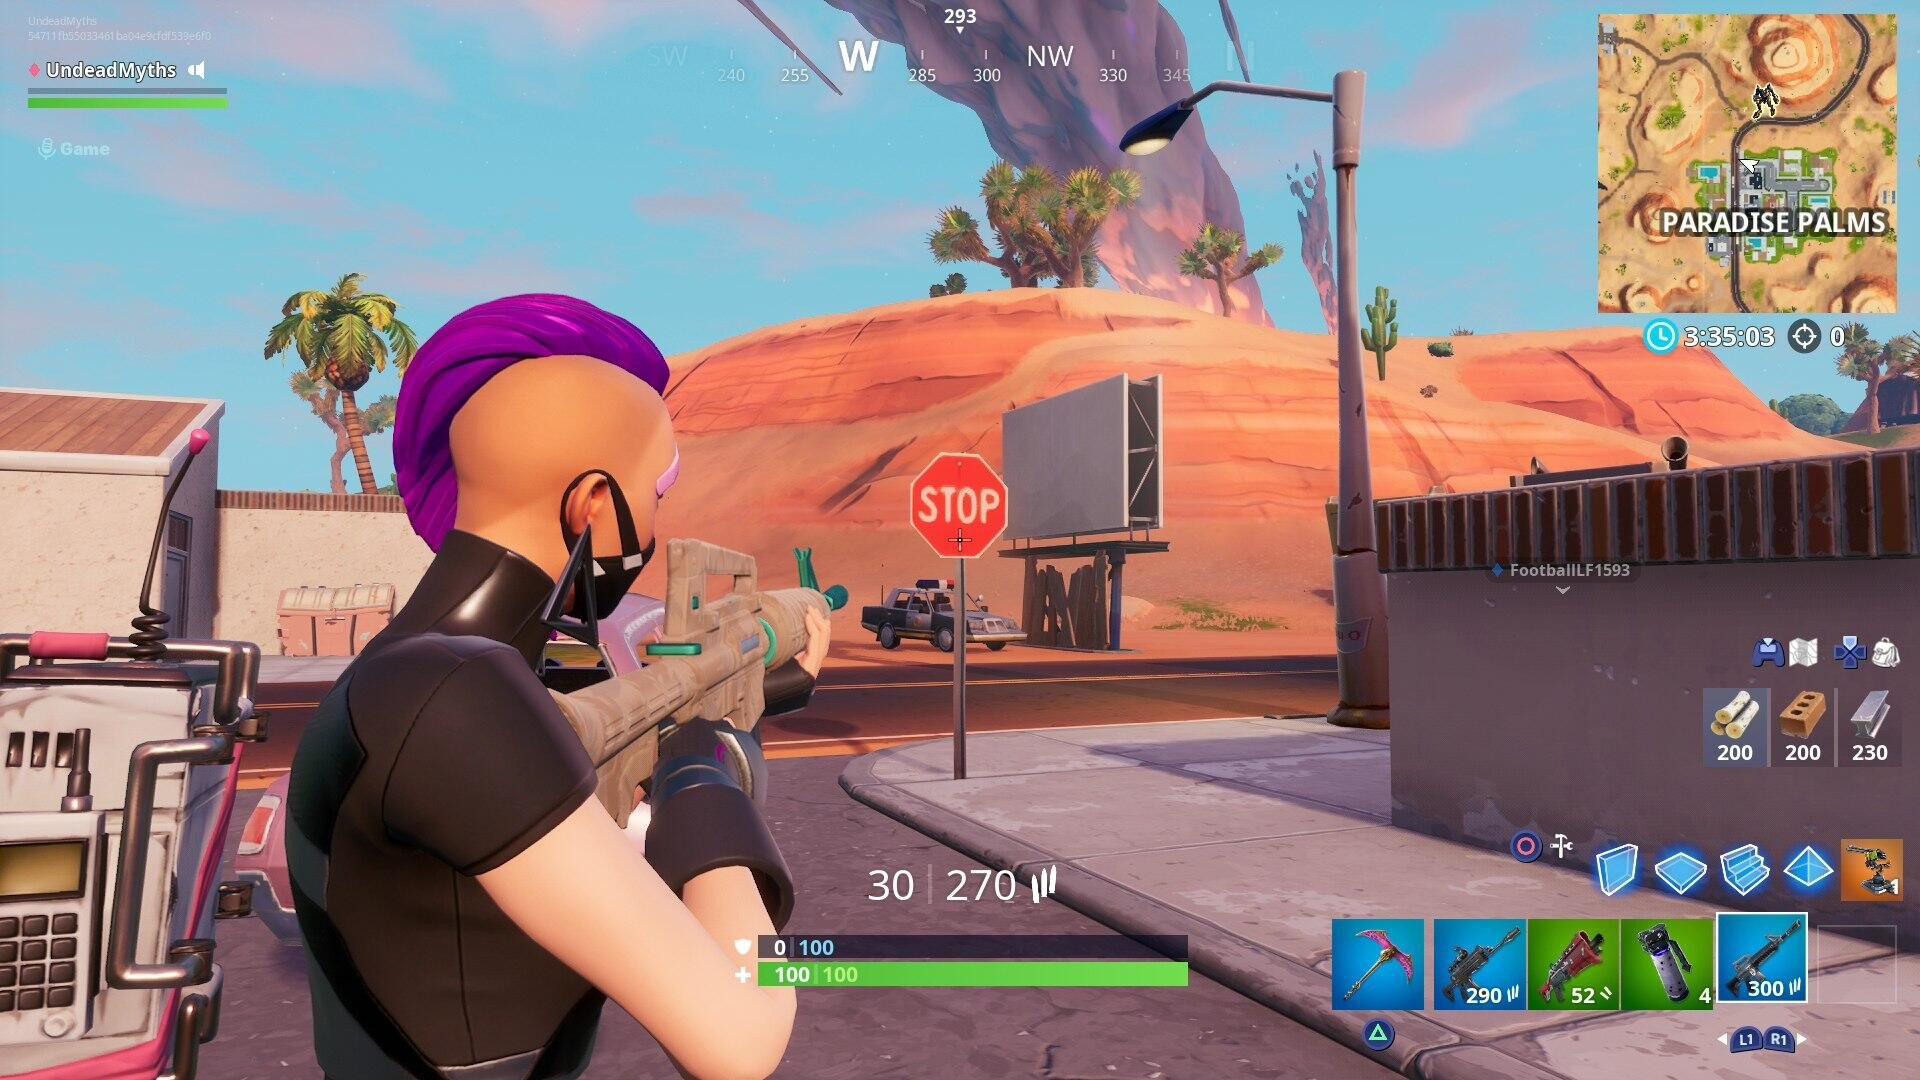 Fortnite Stop Sign Locations - Where to Destroy Stop Signs with the Catalyst Outfit